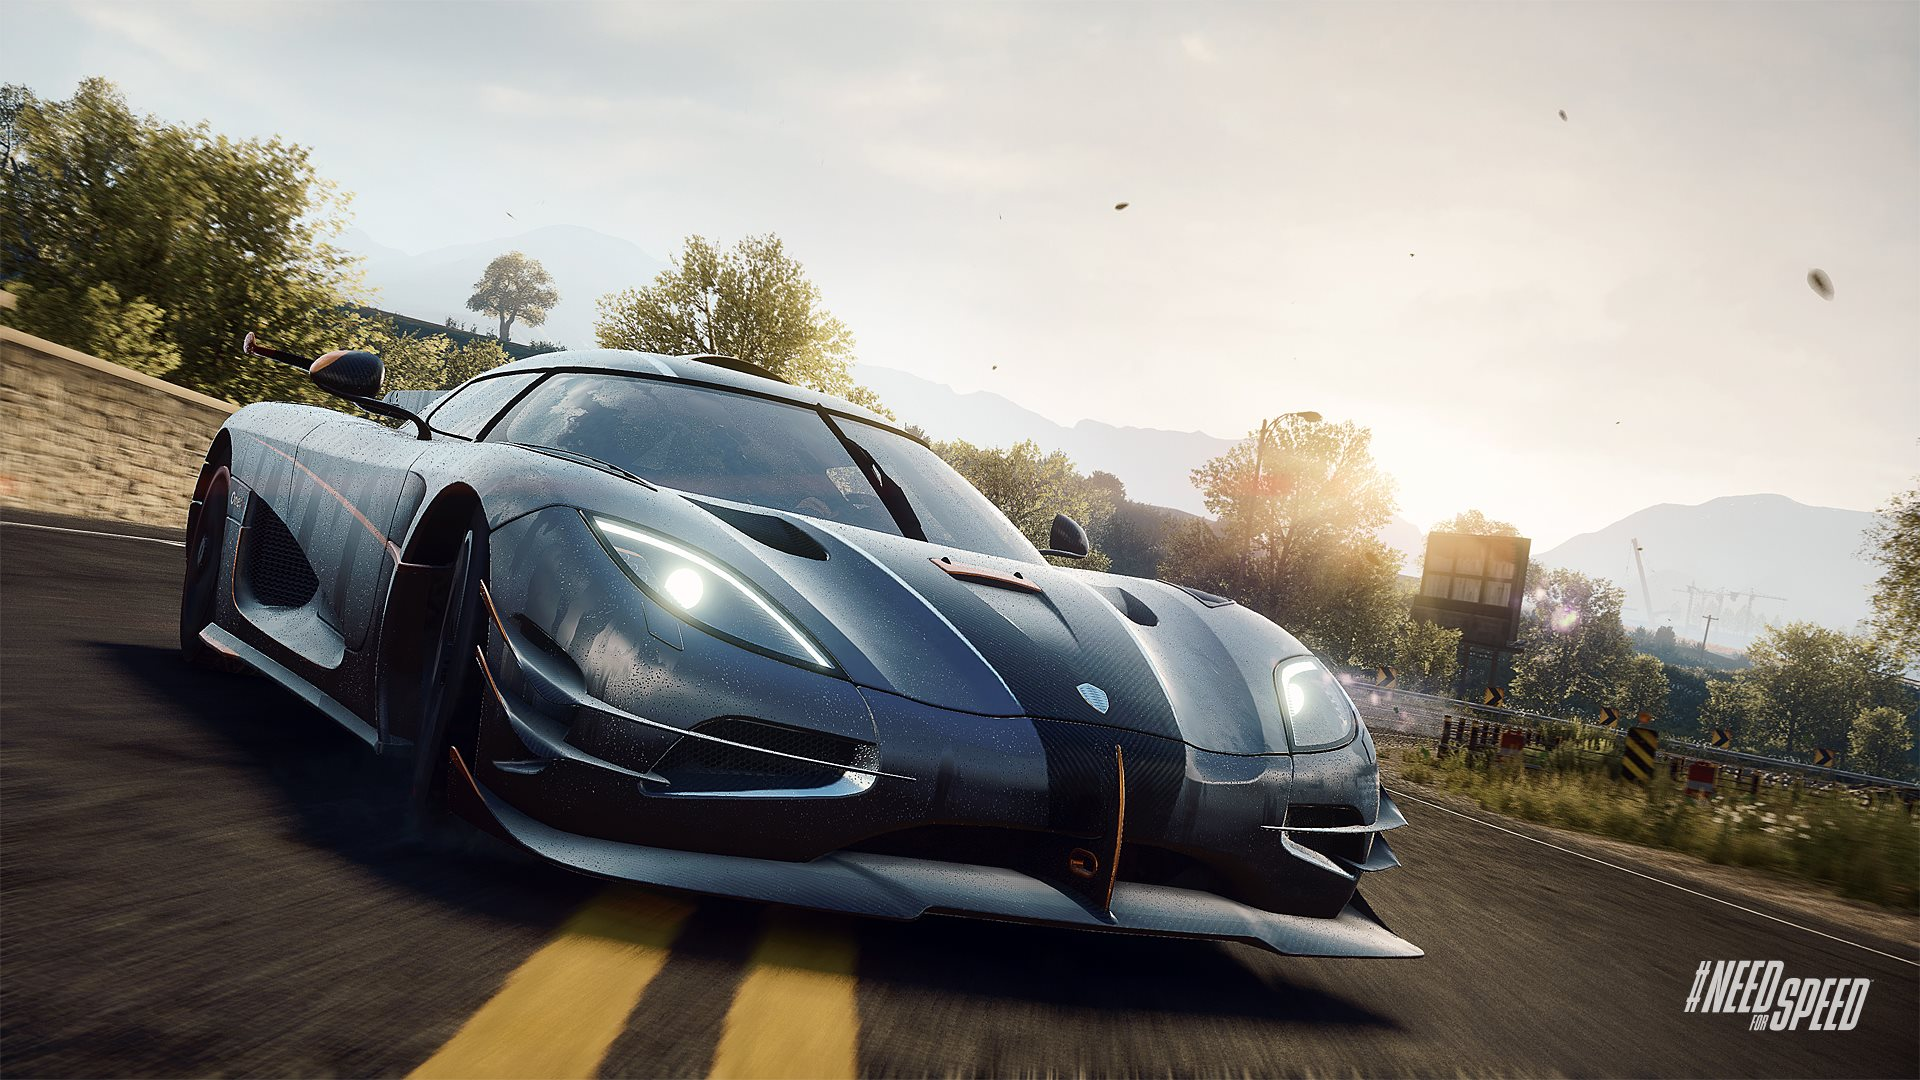 koenigsegg one 1 need for speed wiki fandom powered by wikia. Black Bedroom Furniture Sets. Home Design Ideas